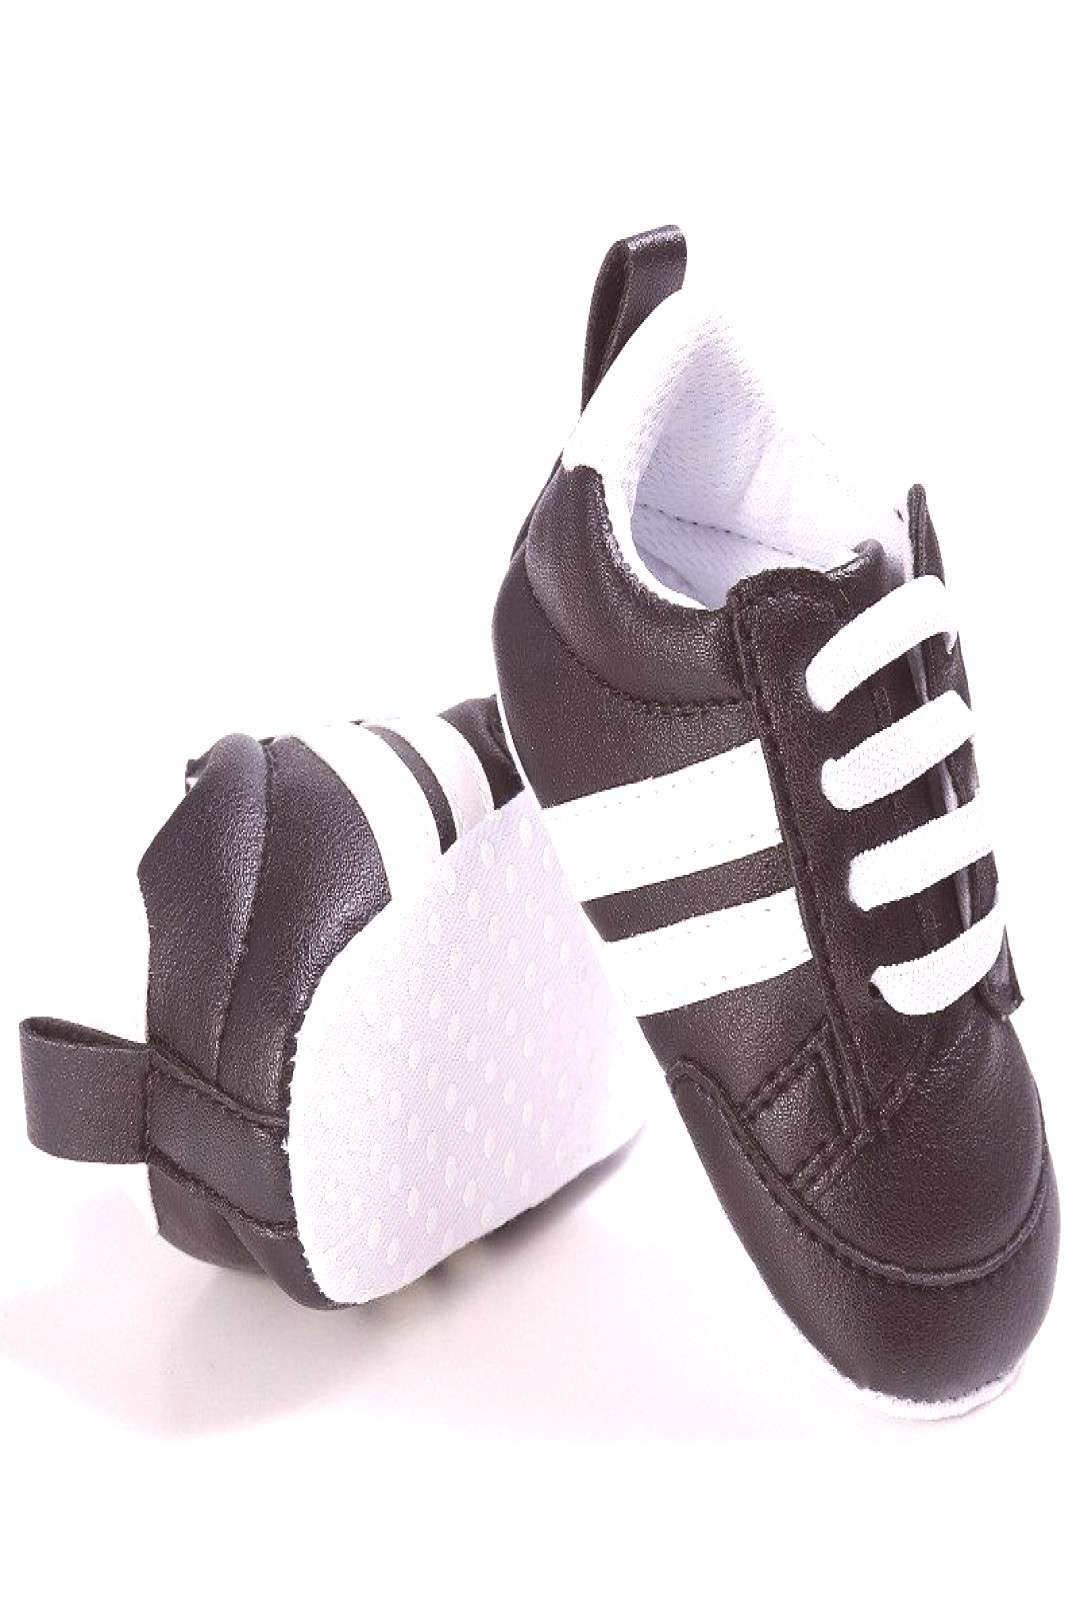 EampBainel Fashion PU leather Baby Moccasins Newborn Baby Shoes For Kids Sneaker Sport Shoes Toddler